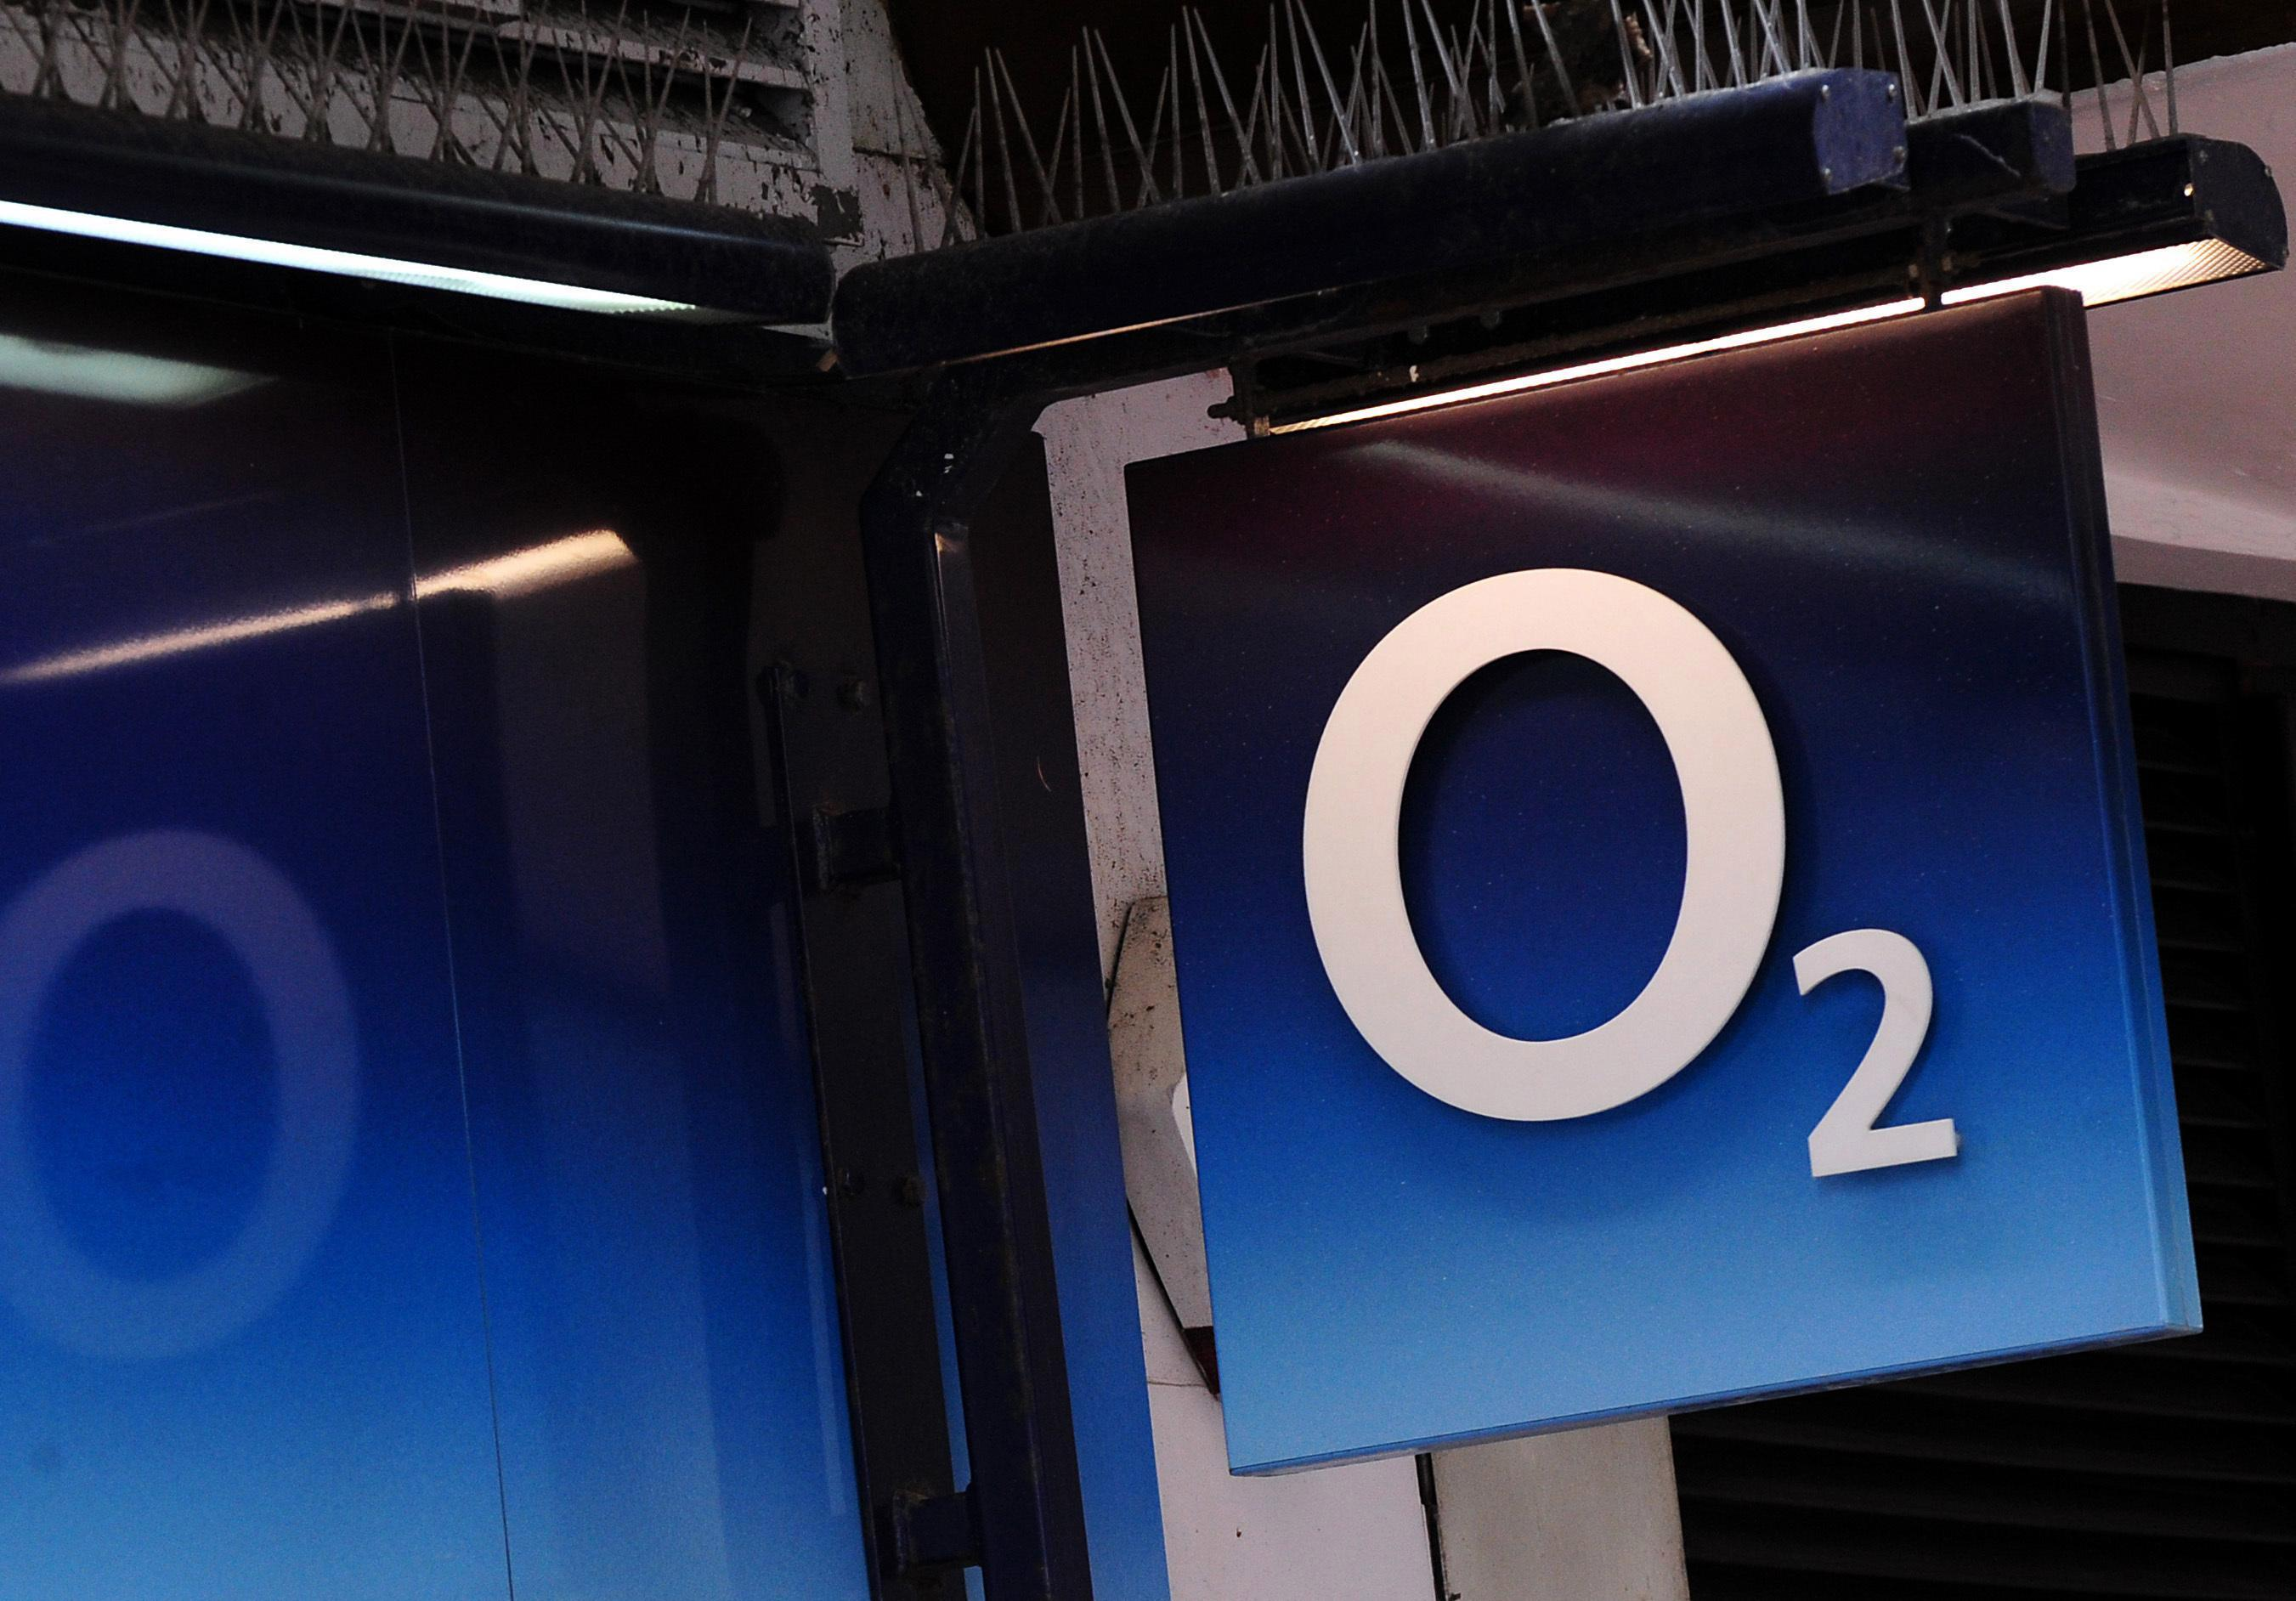 Is O2 network down, are Giffgaff, Sky and Tesco Mobile services affected too and when will 4G data connections be back online?